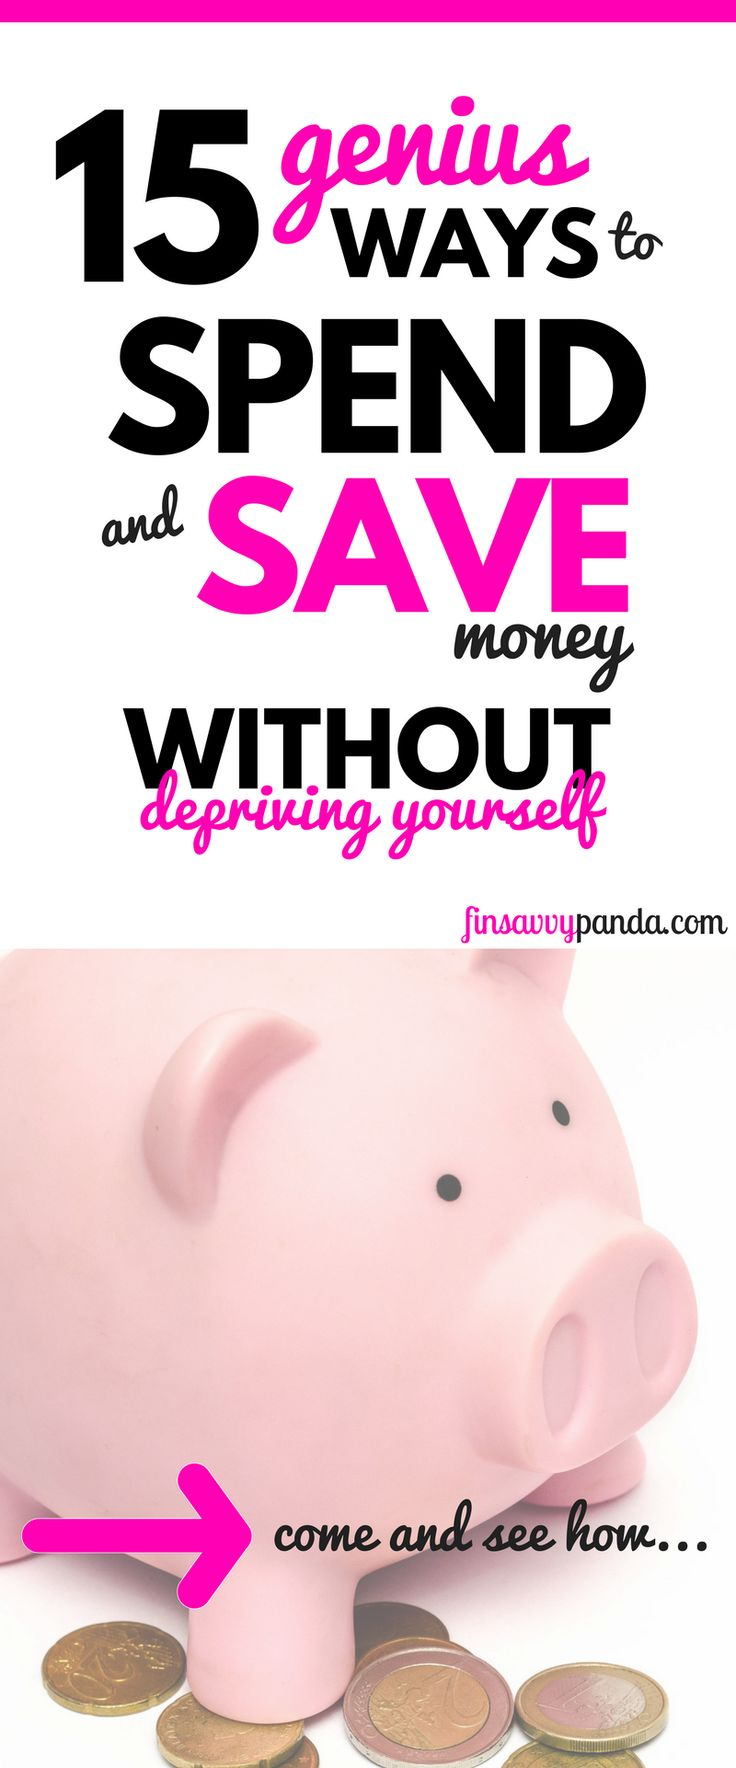 How to save money and yet, have fun at the same time. There is no need to deprive yourself! Learn how to save and spend money the smart way. | save money | money tips | saving money ideas | personal finance tips | budget tracker | budget organizer | get out of debt | how to save money | frugal living tips | frugal living ideas | millennial